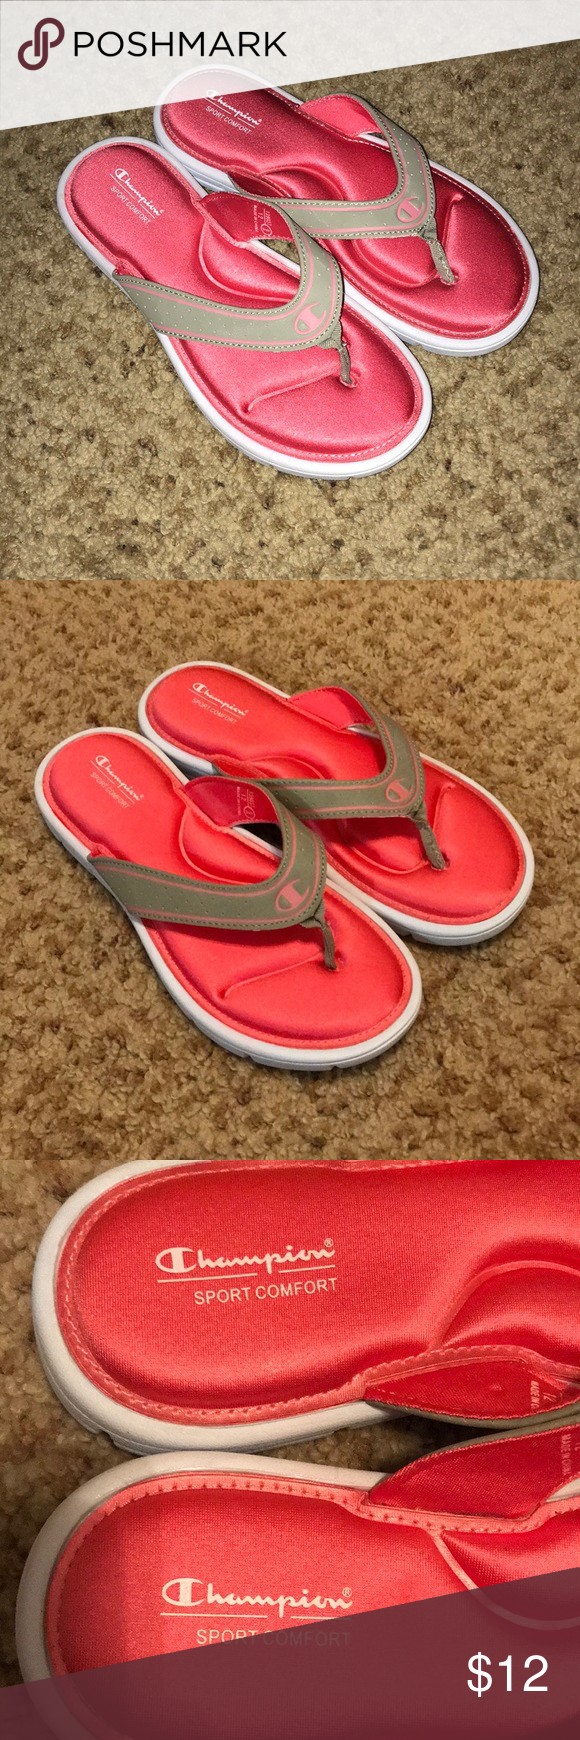 a6b30e468 Champion foam slides Champion women s size 9 foam slides